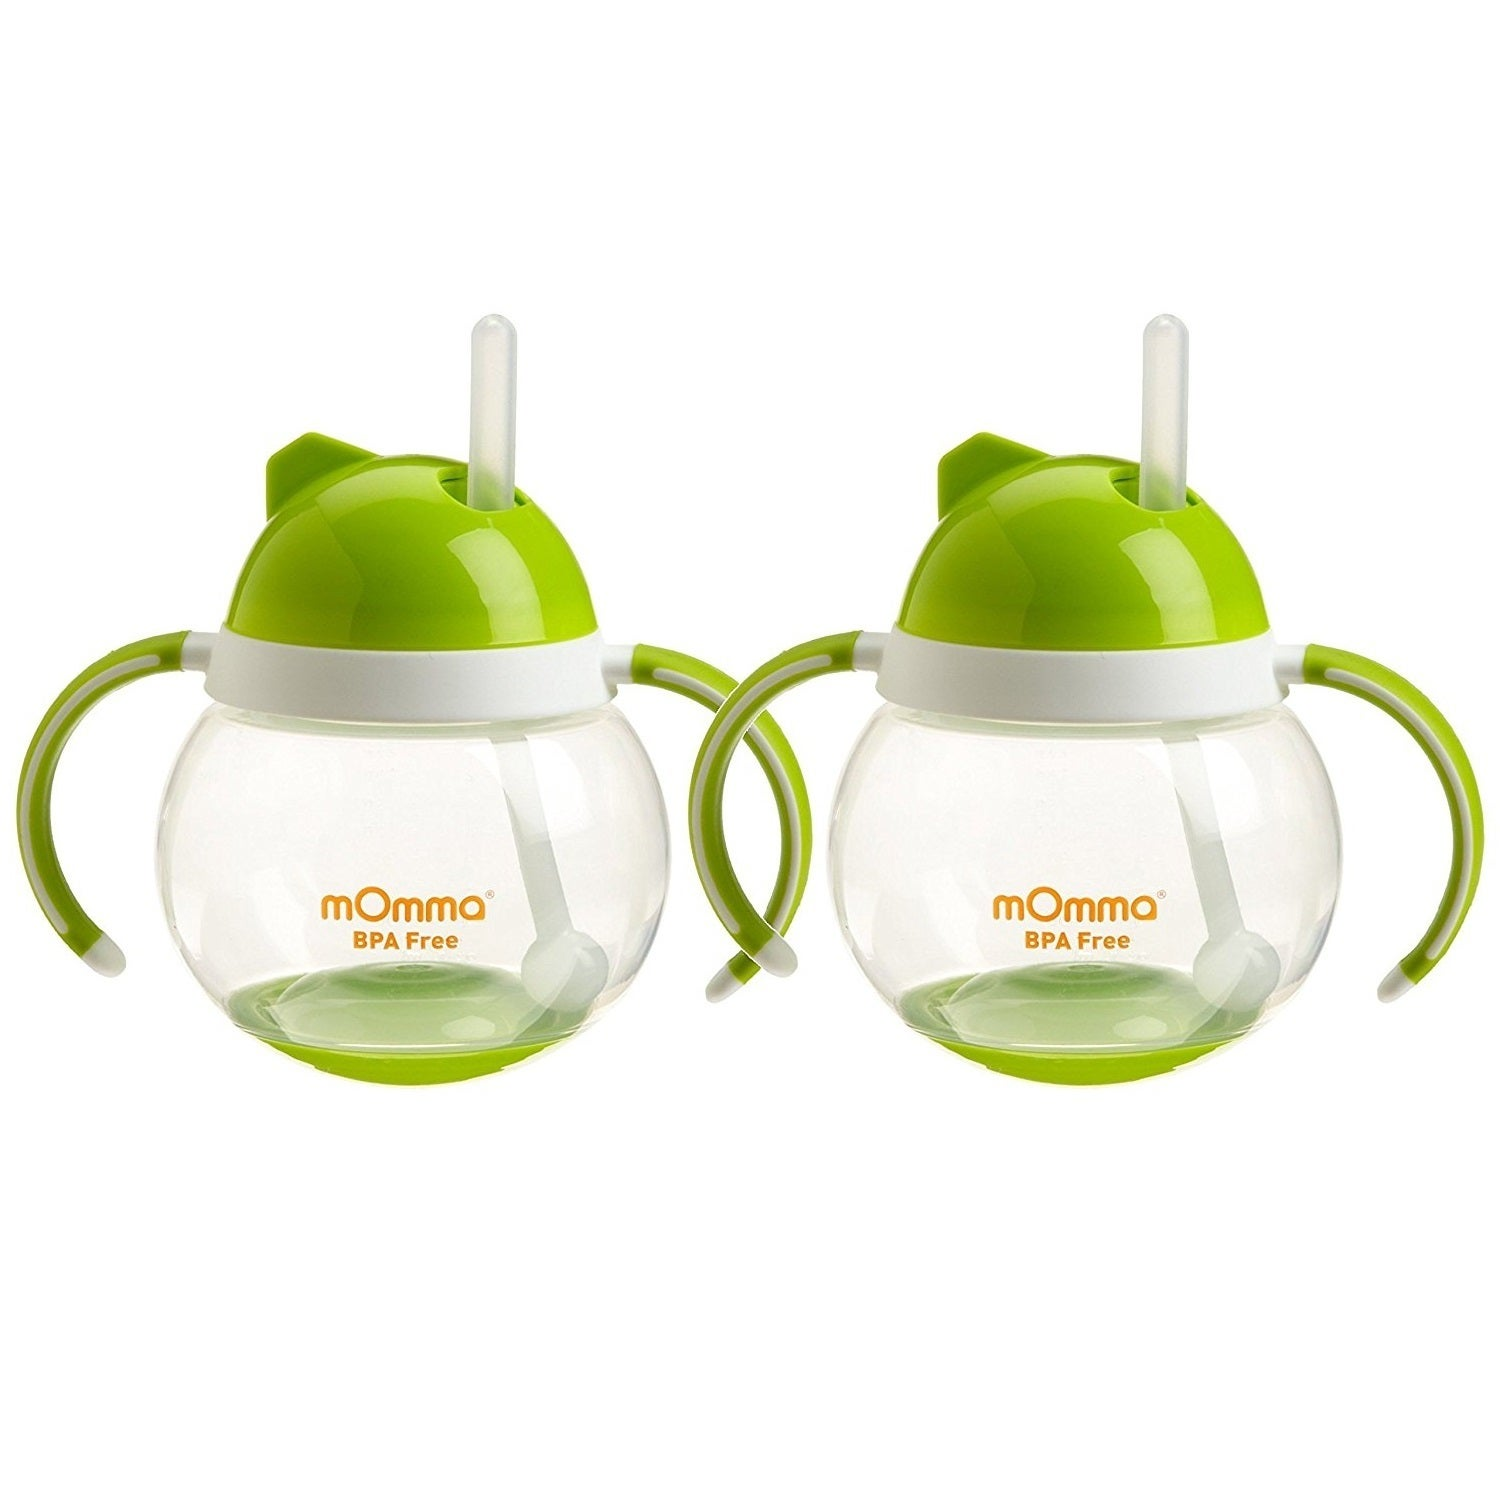 Lansinoh mOmma Straw Cup with Dual Handles - Green - 2 Co...